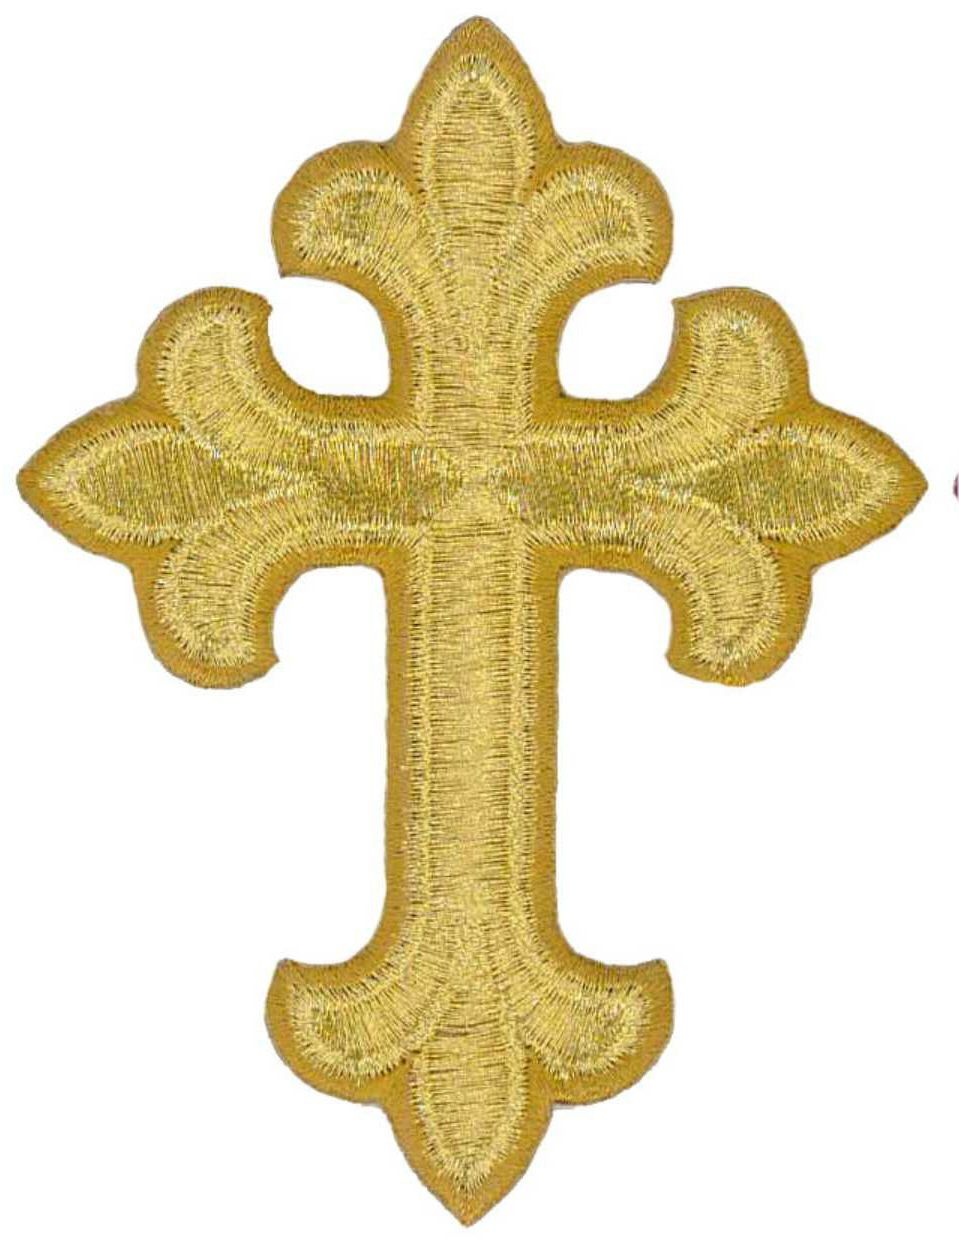 King J2883 Embroidered Gold Rayon Iron On Patch Crown W//5 Leaf Points